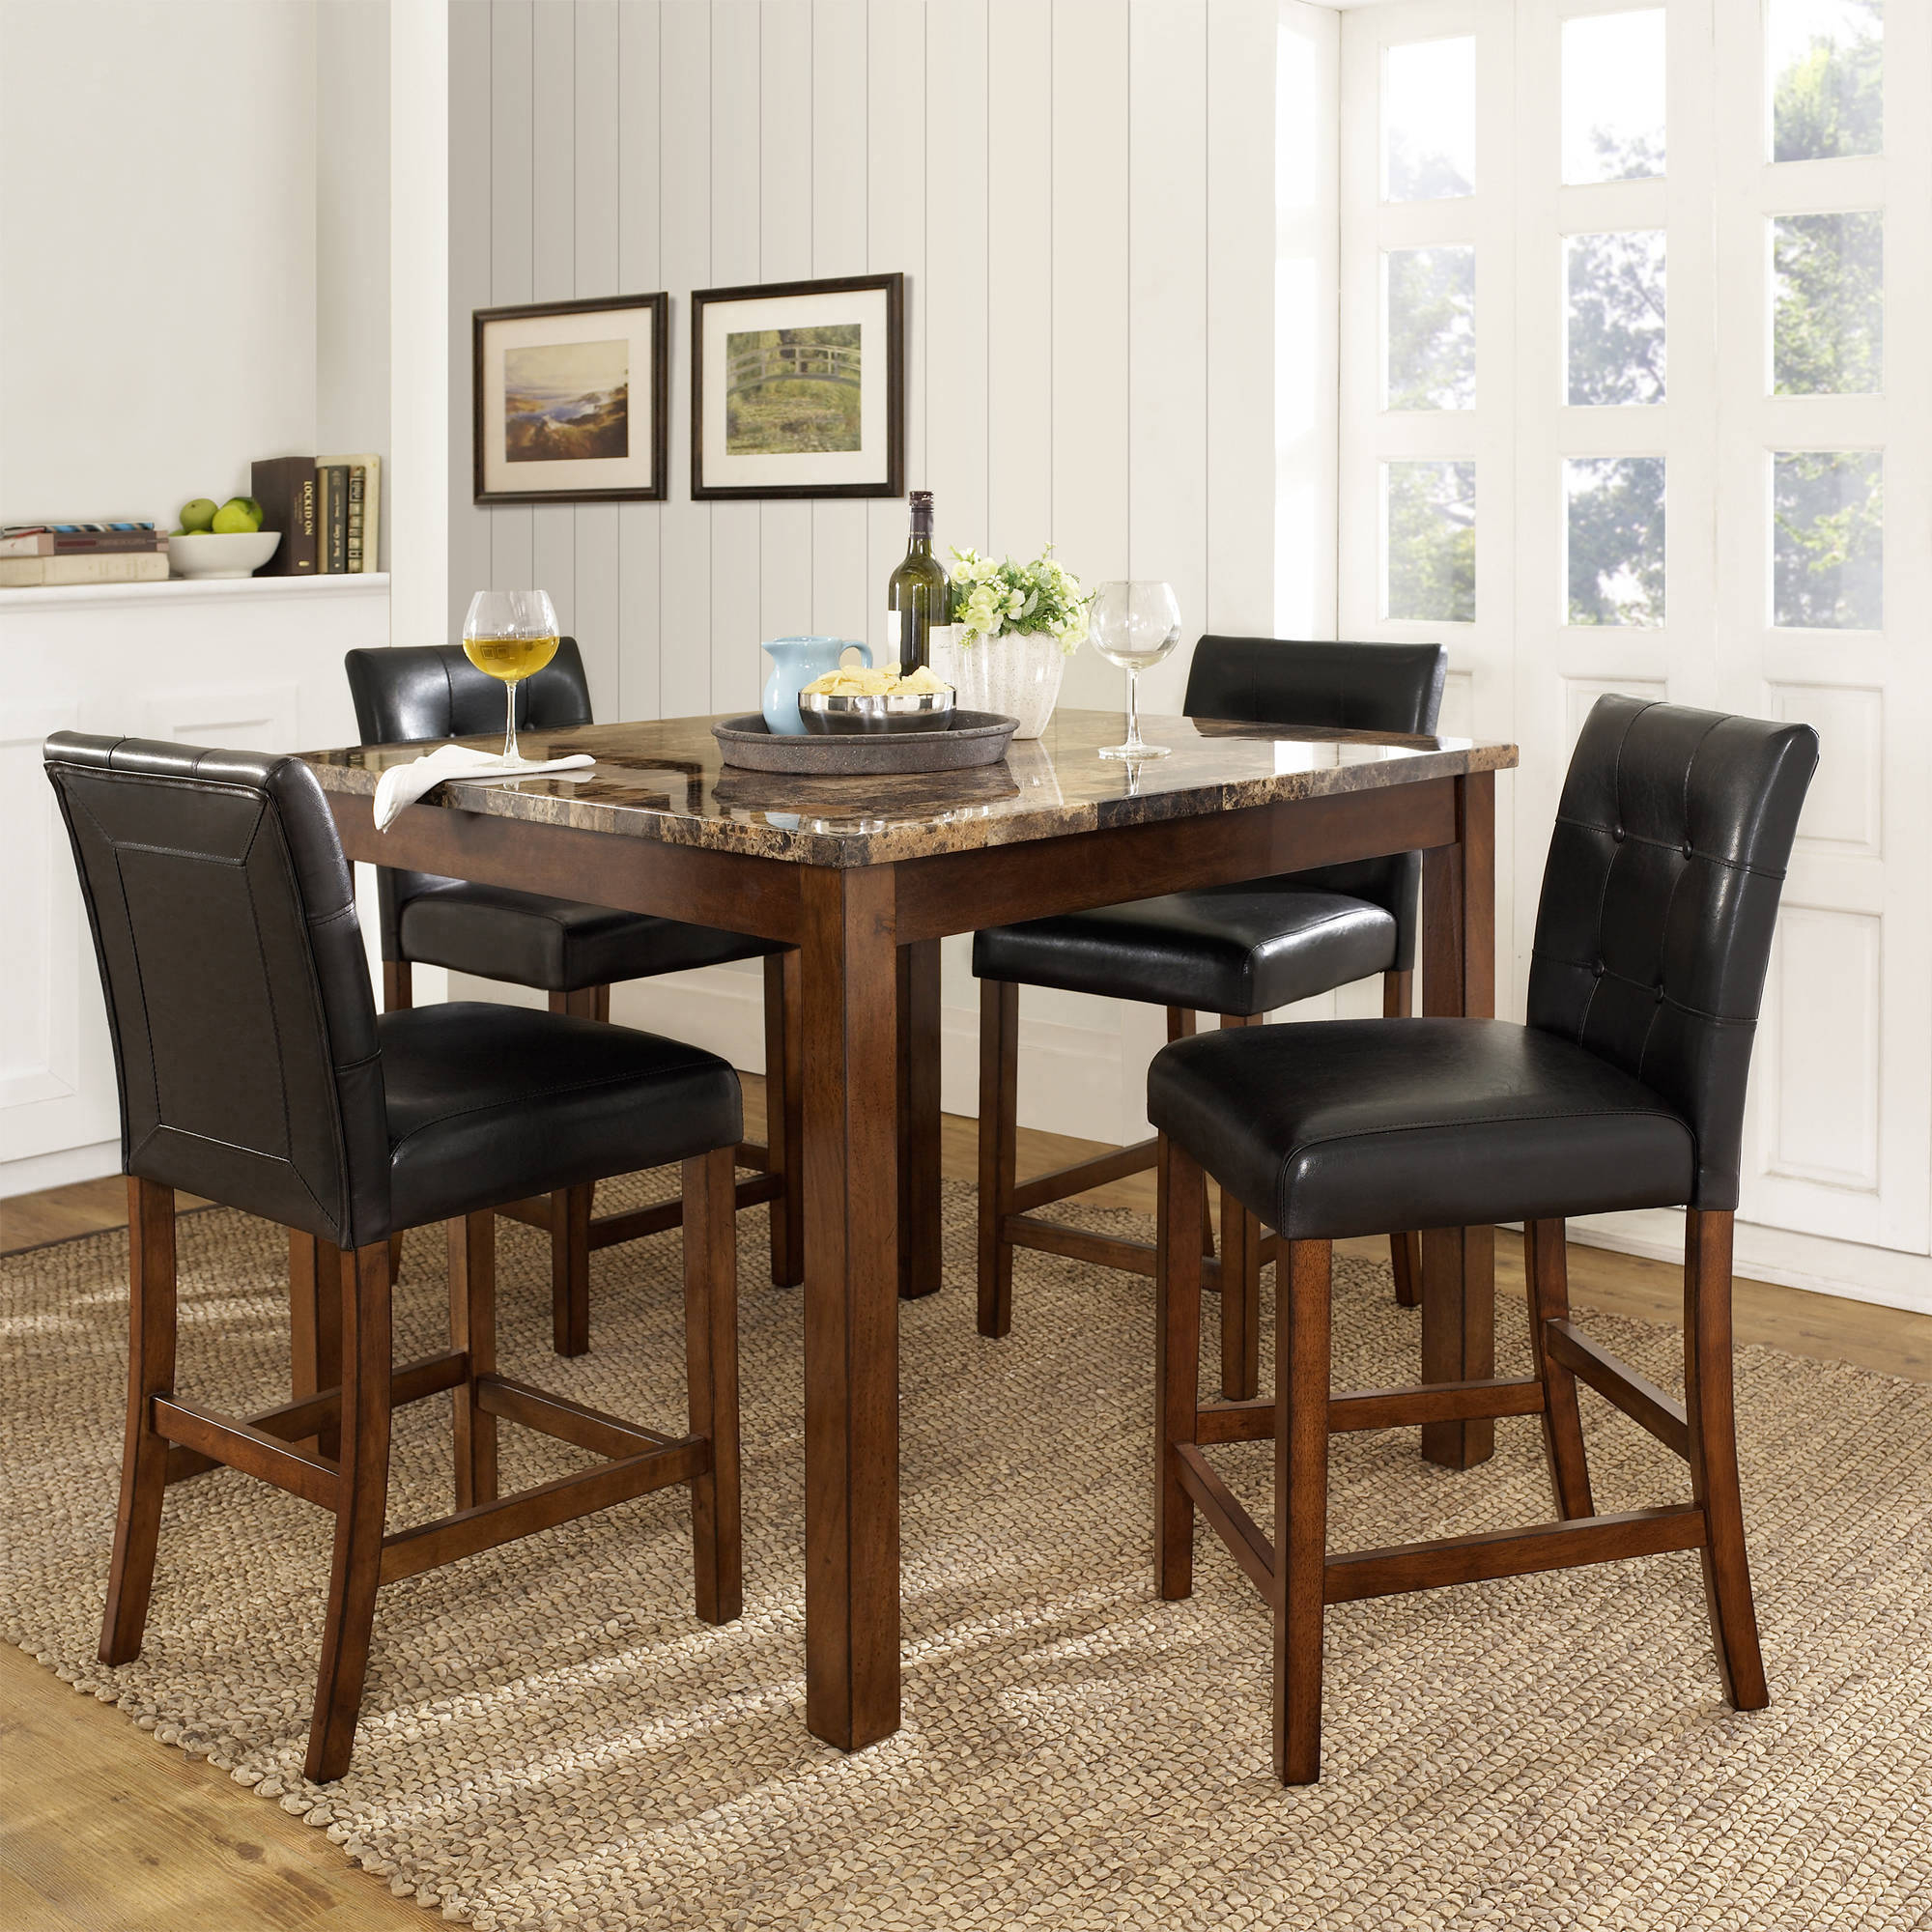 Dorel Living Andover 5 Piece Counter Height Dining Set Multiple intended for 11 Clever Designs of How to Craft Living And Dining Room Sets